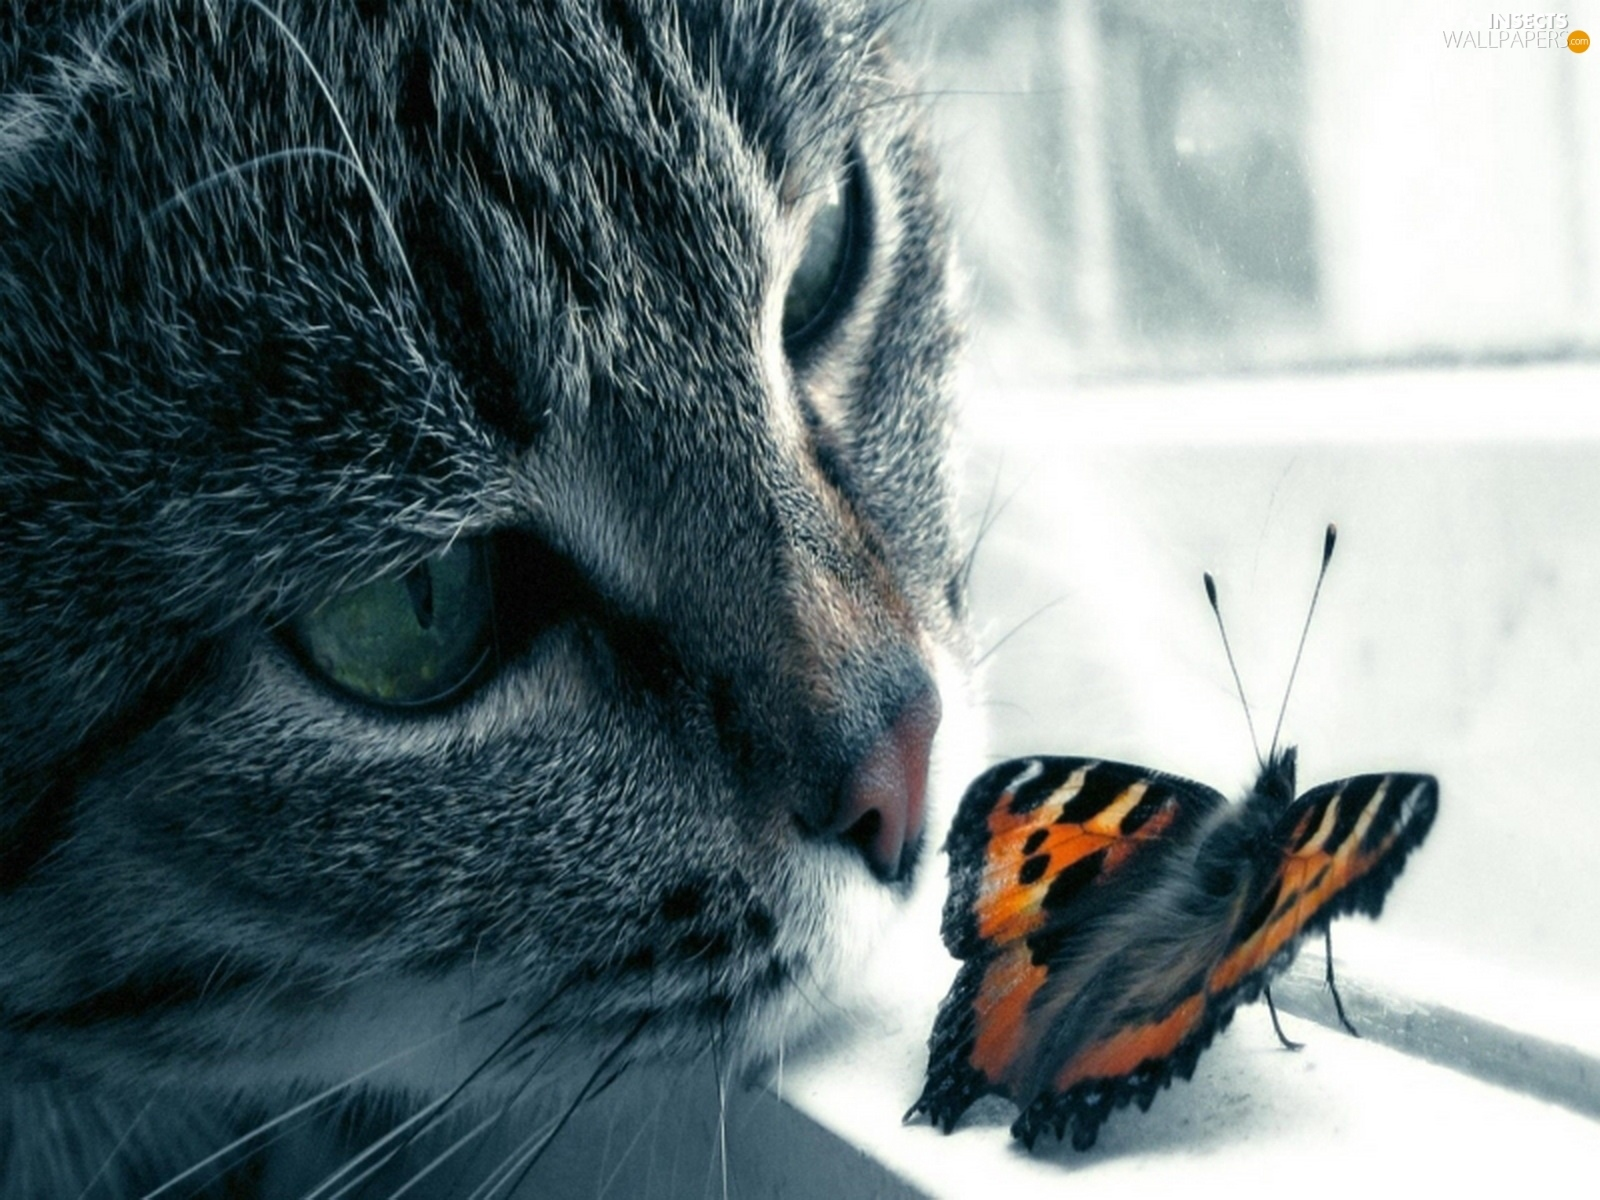 butterfly Window cat   Insects wallpapers 1600x1200 1600x1200